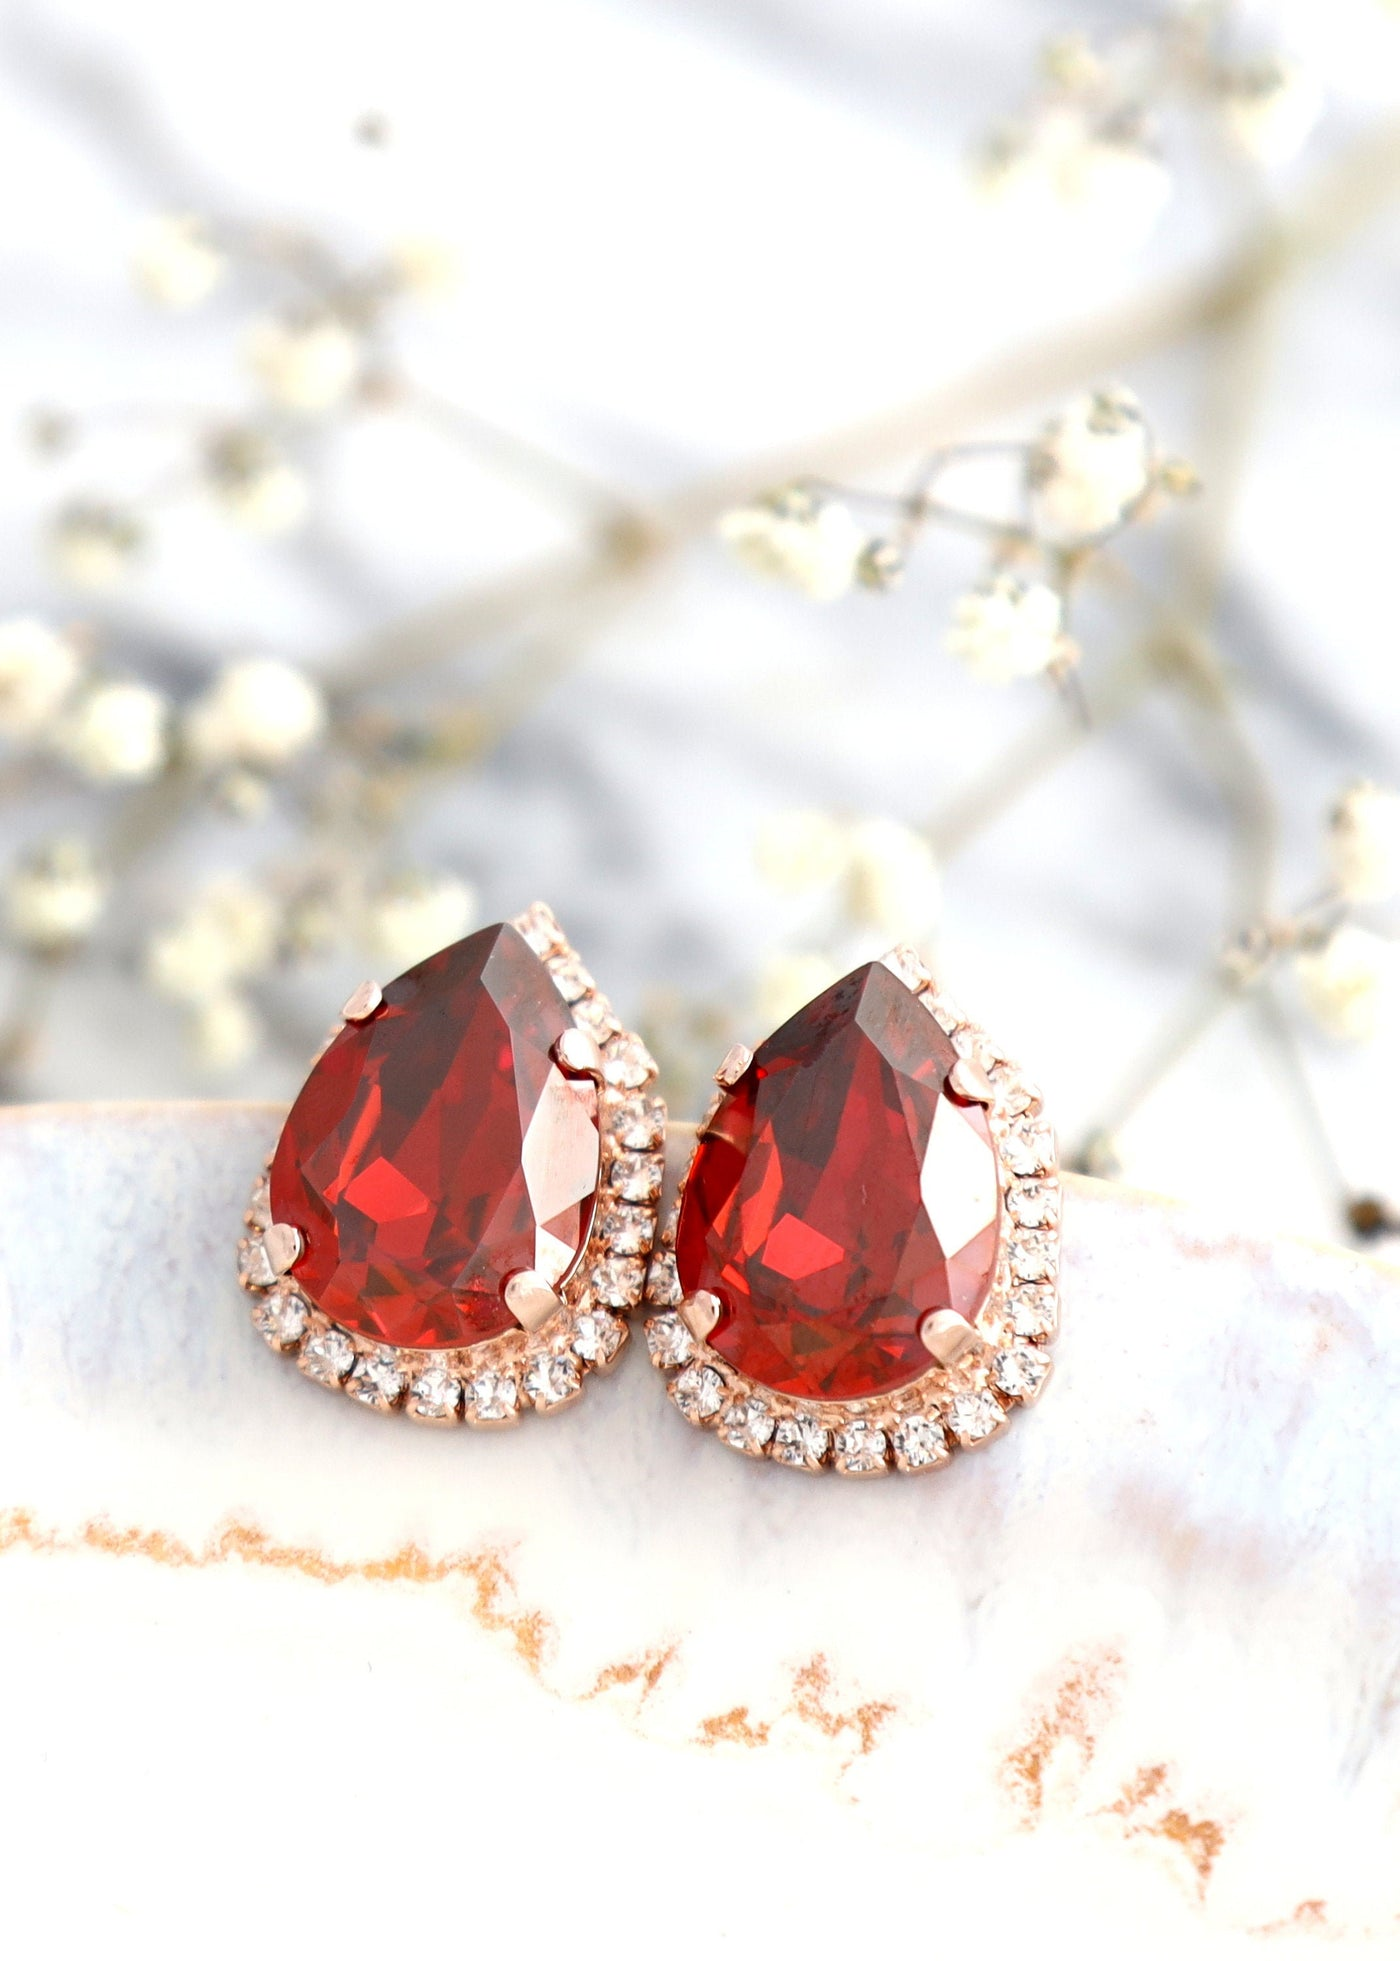 RED EARRINGS, Bridal Ruby Crystal Earrings, Teardrop Red Swarovski Crystal Earrings, RARE Red Magma Earrings, Bridesmaids Red Earrings